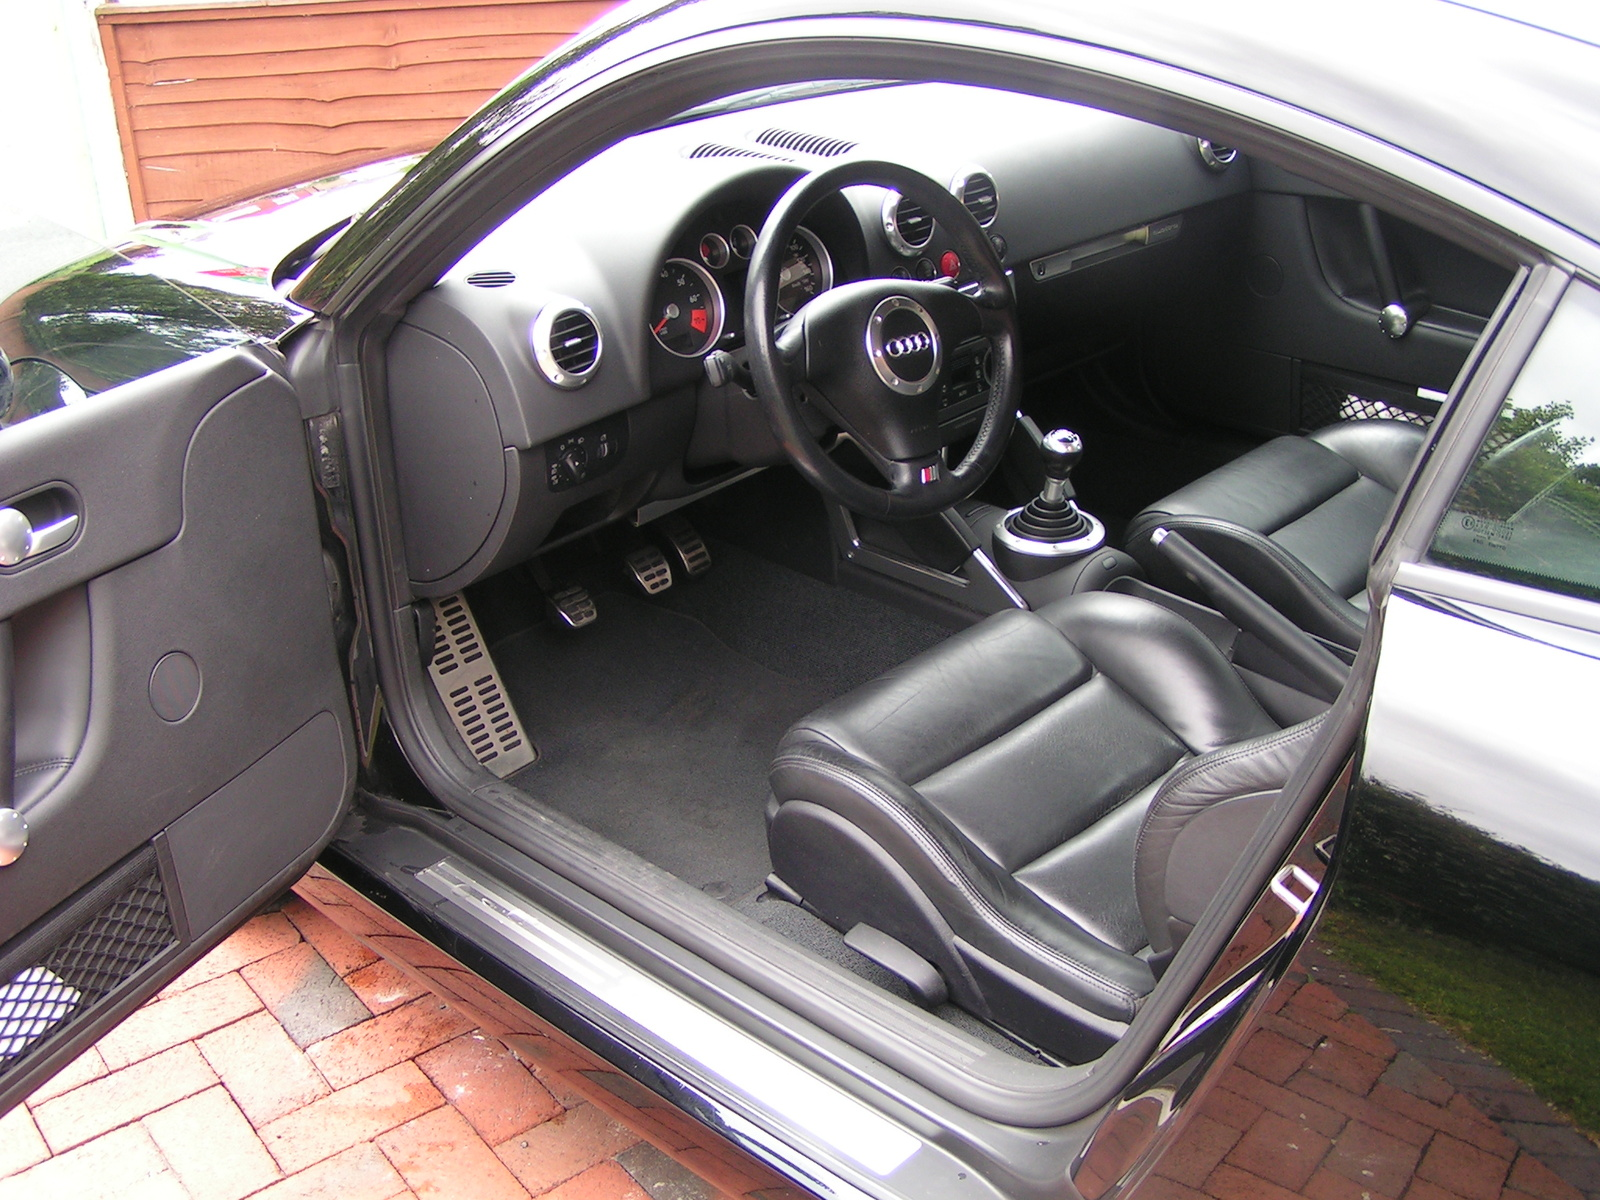 2000 audi tt interior pictures cargurus for Interieur tt 2000